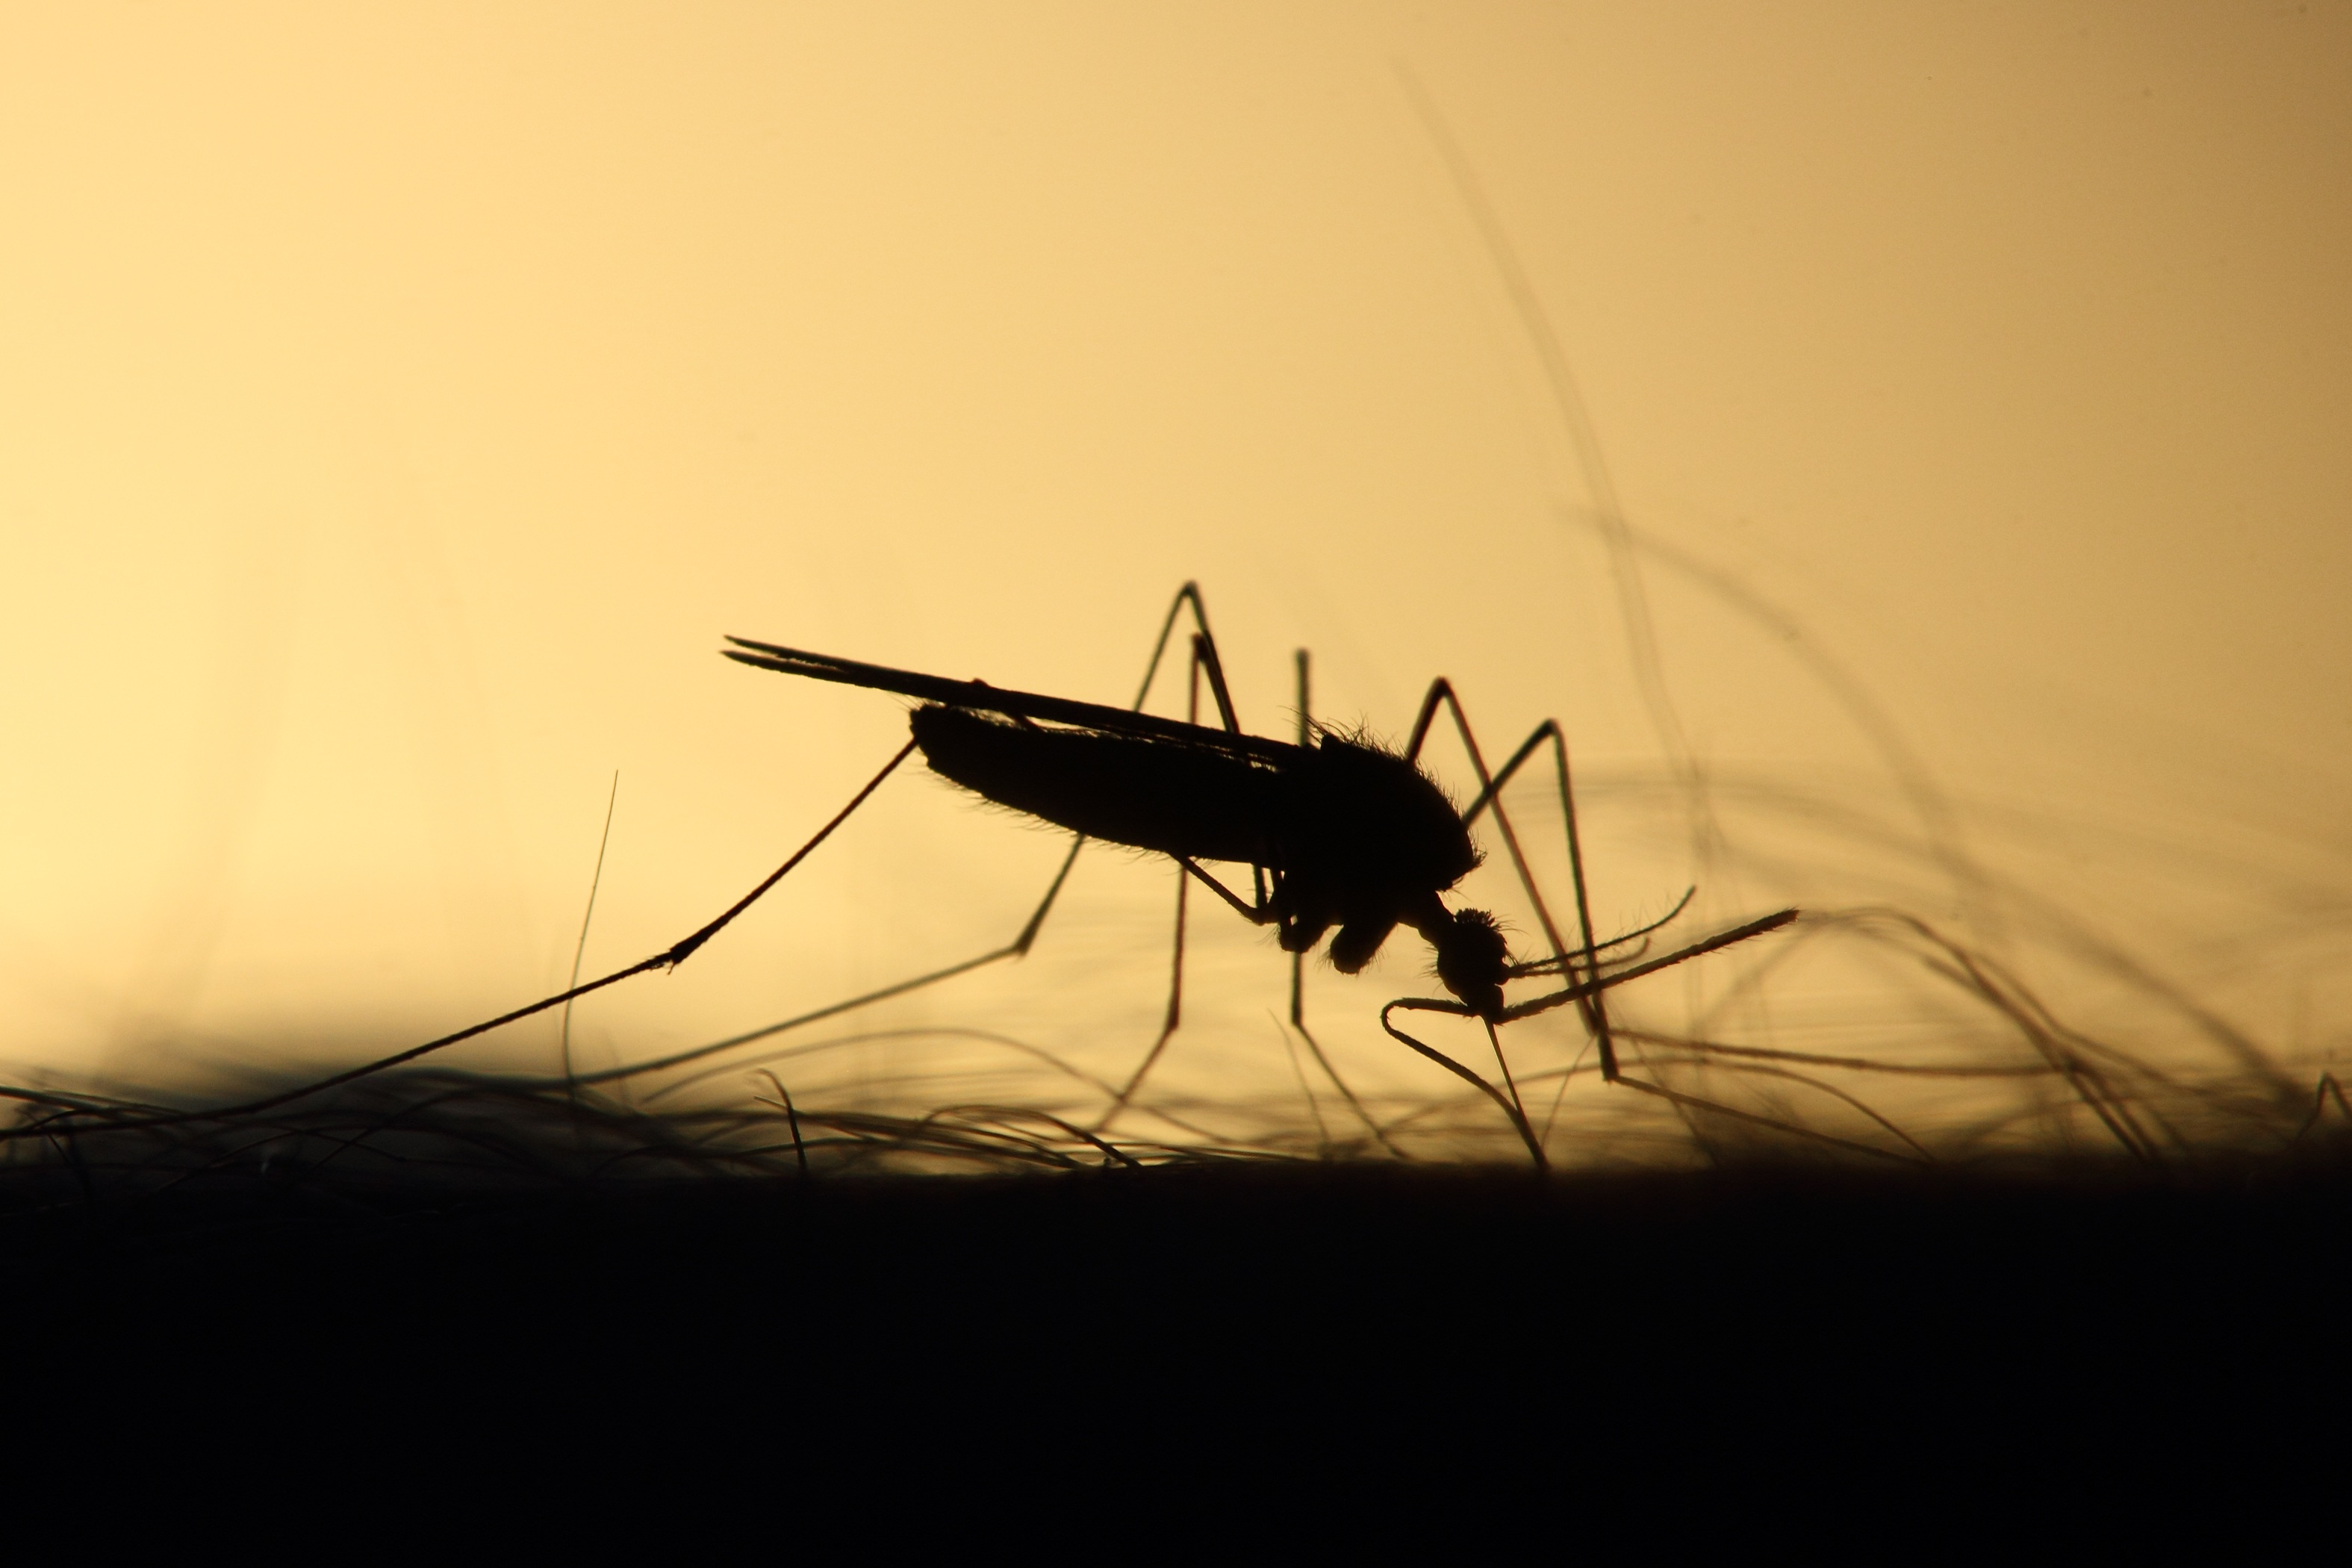 Silhouette of a mosquito on somebody's arm